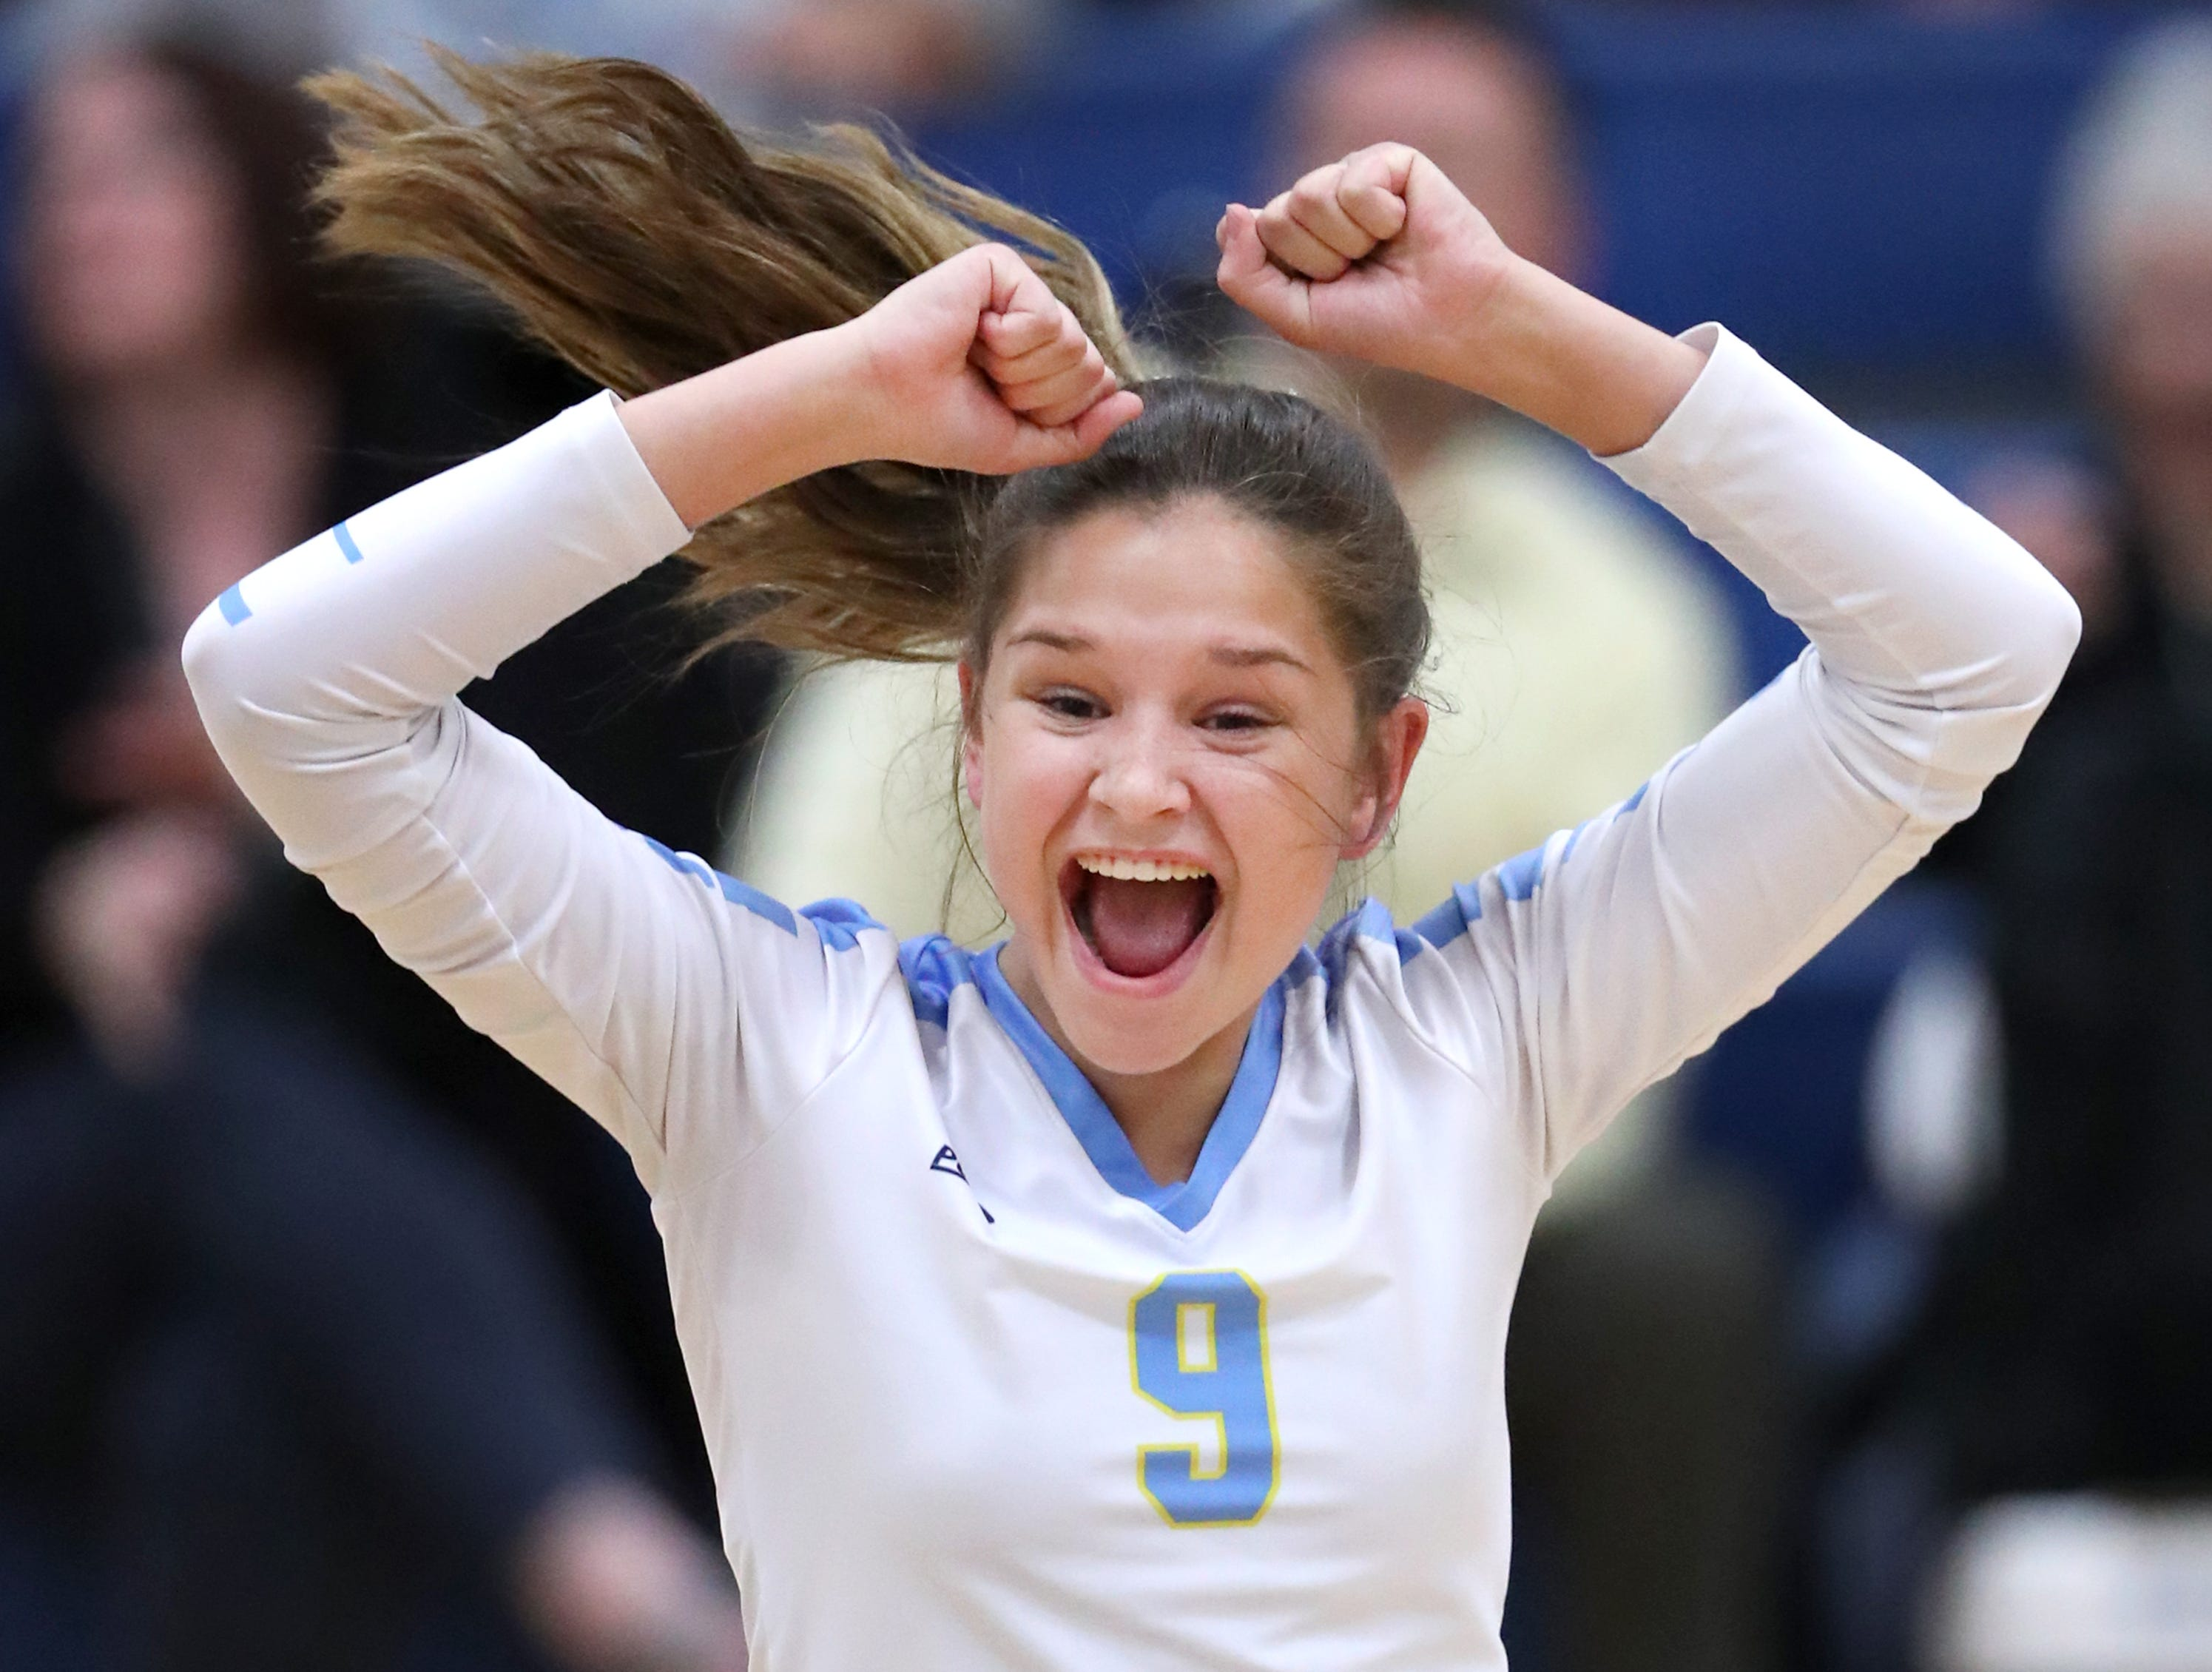 Rosie Butler, of St. Mary Catholic, celebrates after scoring a point against Mishicot Thursday, Sept. 6, 2018, in Fox Crossing, Wis.